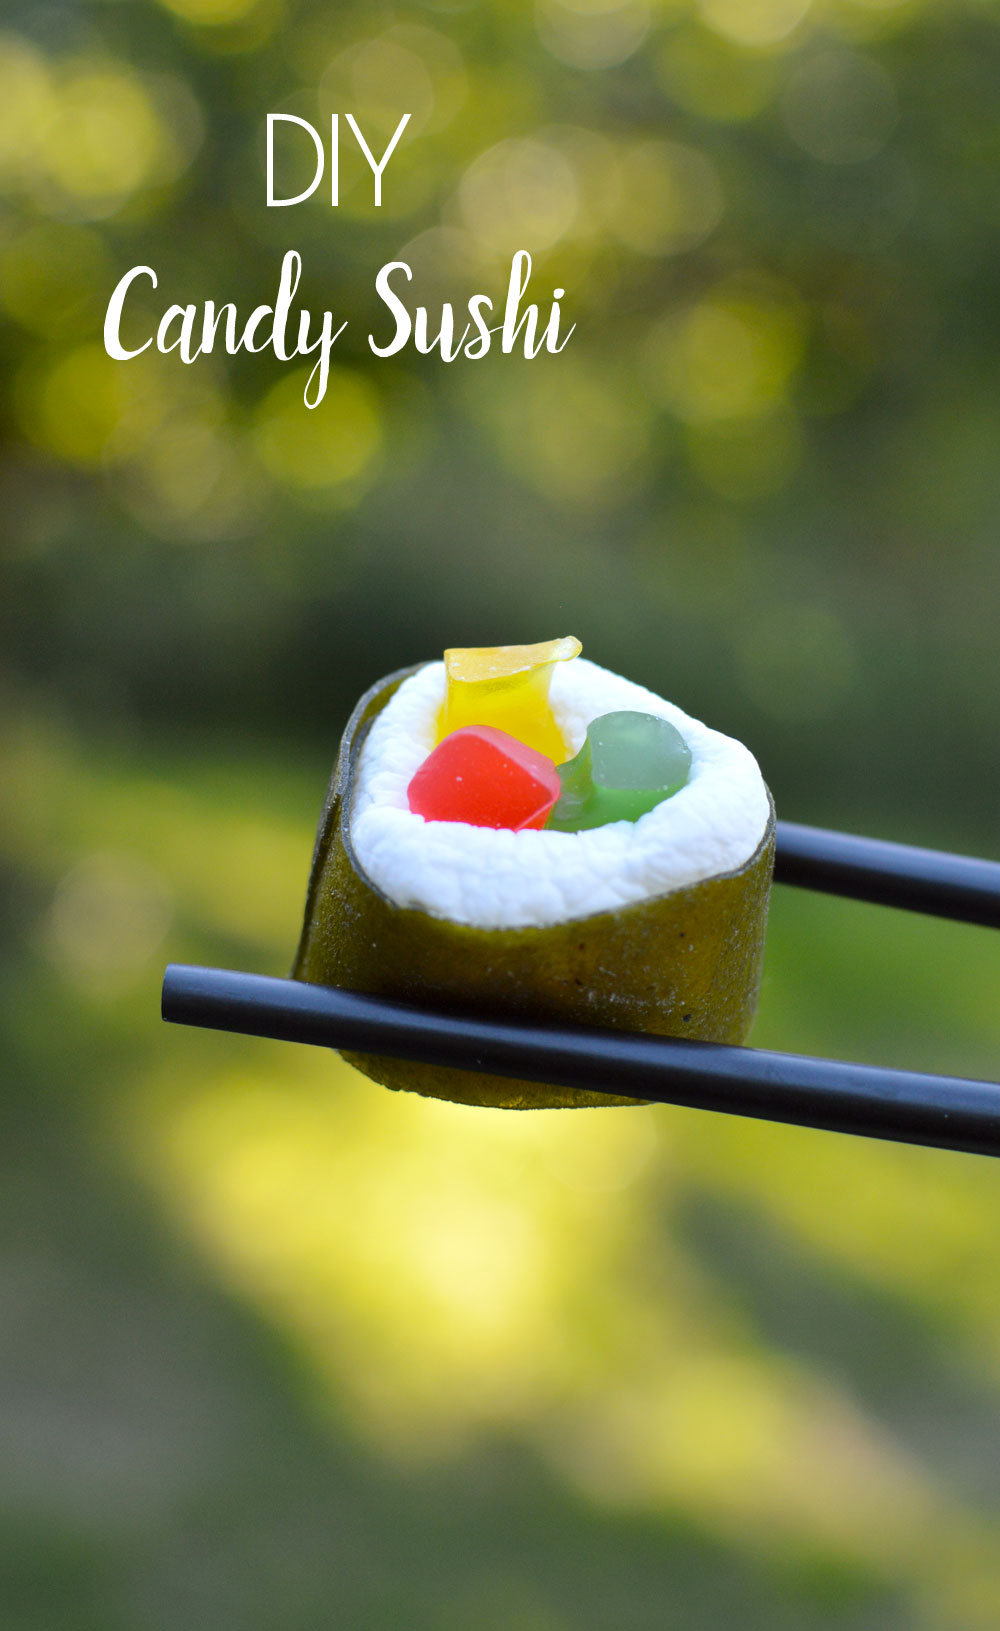 DIY Candy Sushi and fun party treats - Mommy Scene